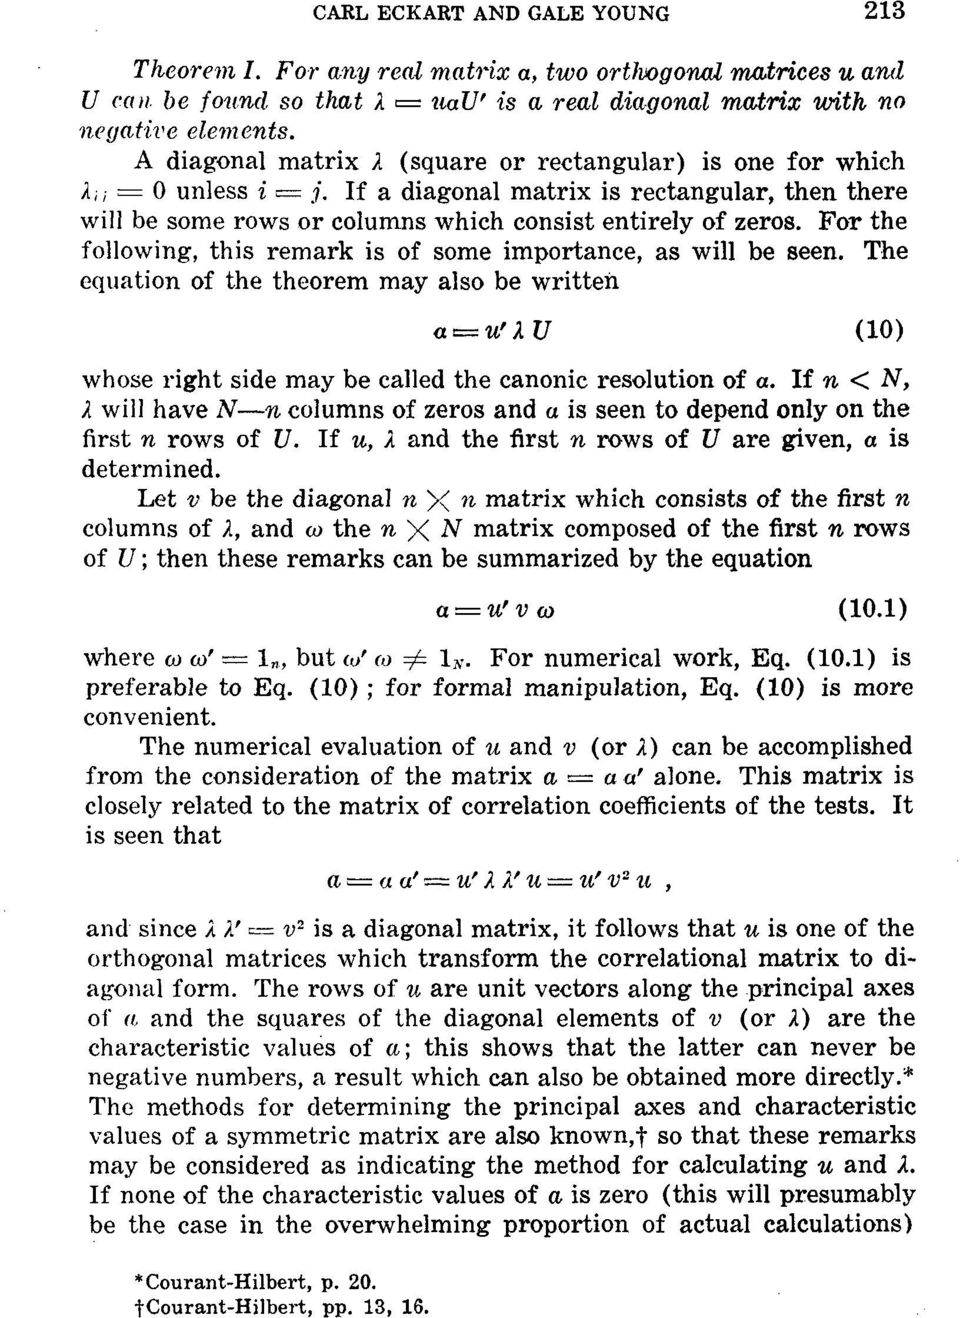 "For the following, this remark is of some importance, as will be seen. The equation of the theorem may also be written a~u"" ~ U (10) whose right side may be called the canonic resolution of a."